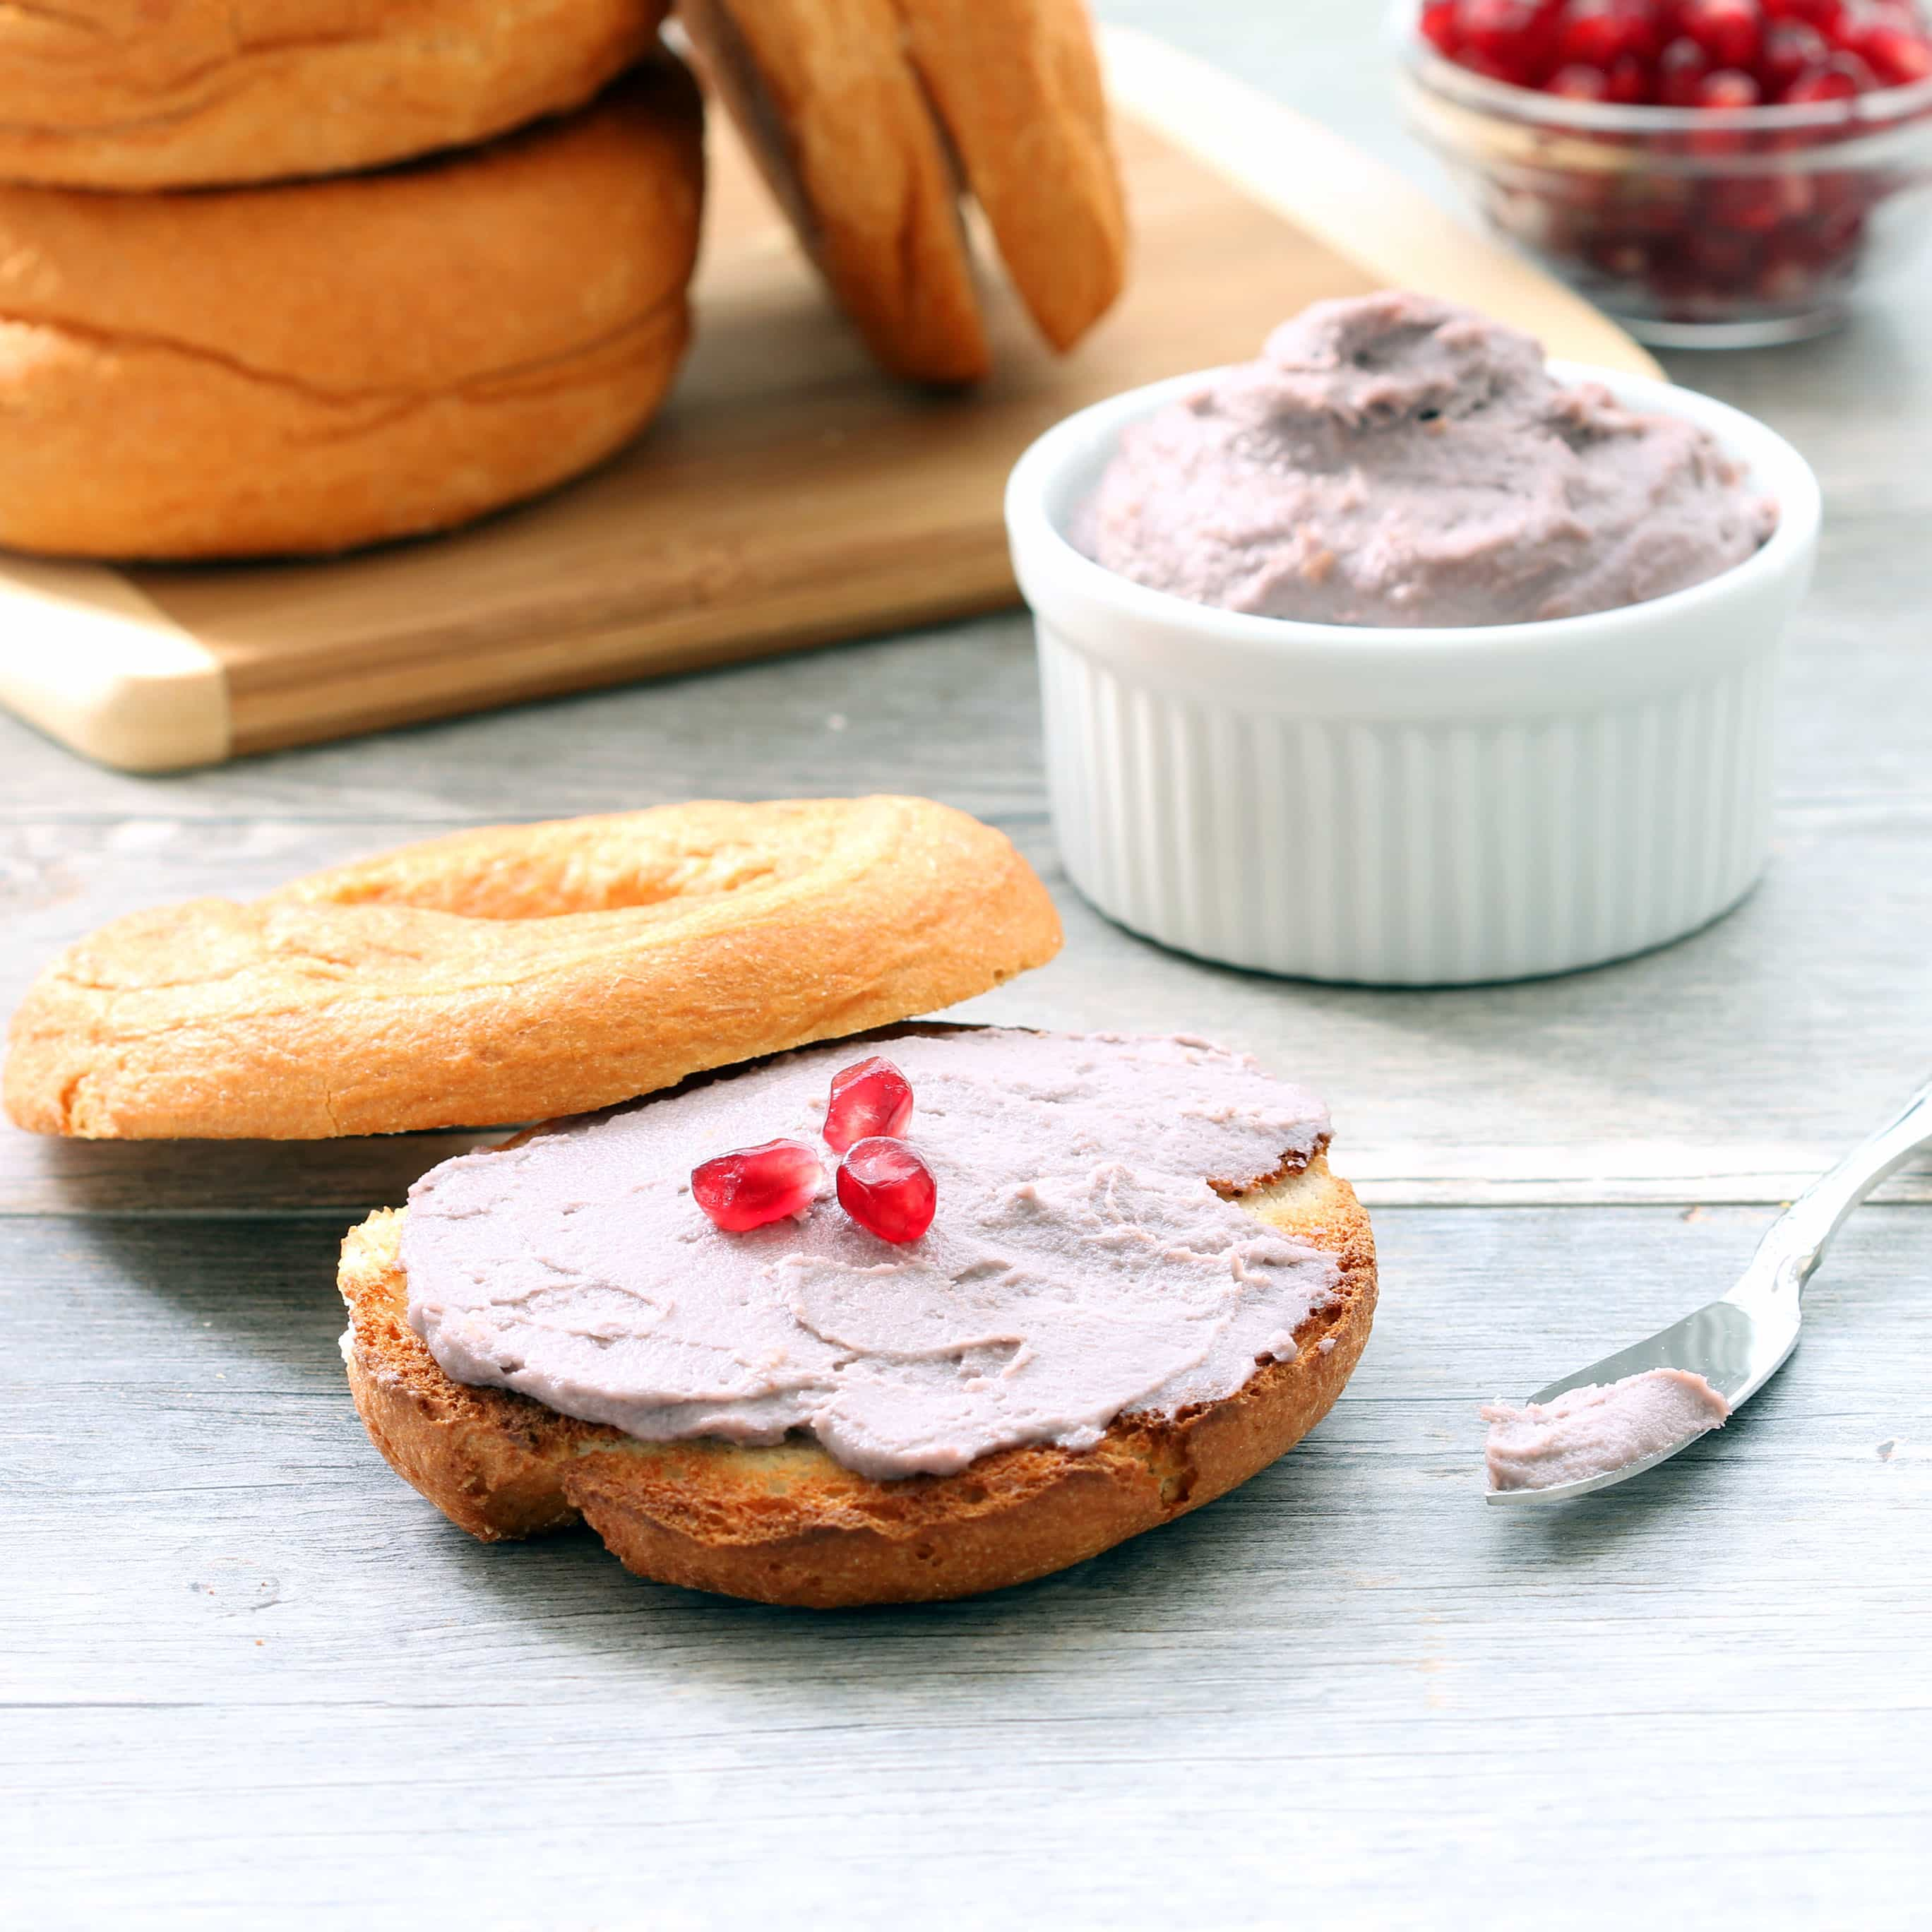 Pomegranate Vegan Cream Cheese (Gluten-free, Plant-based, Soy-free, RSF)